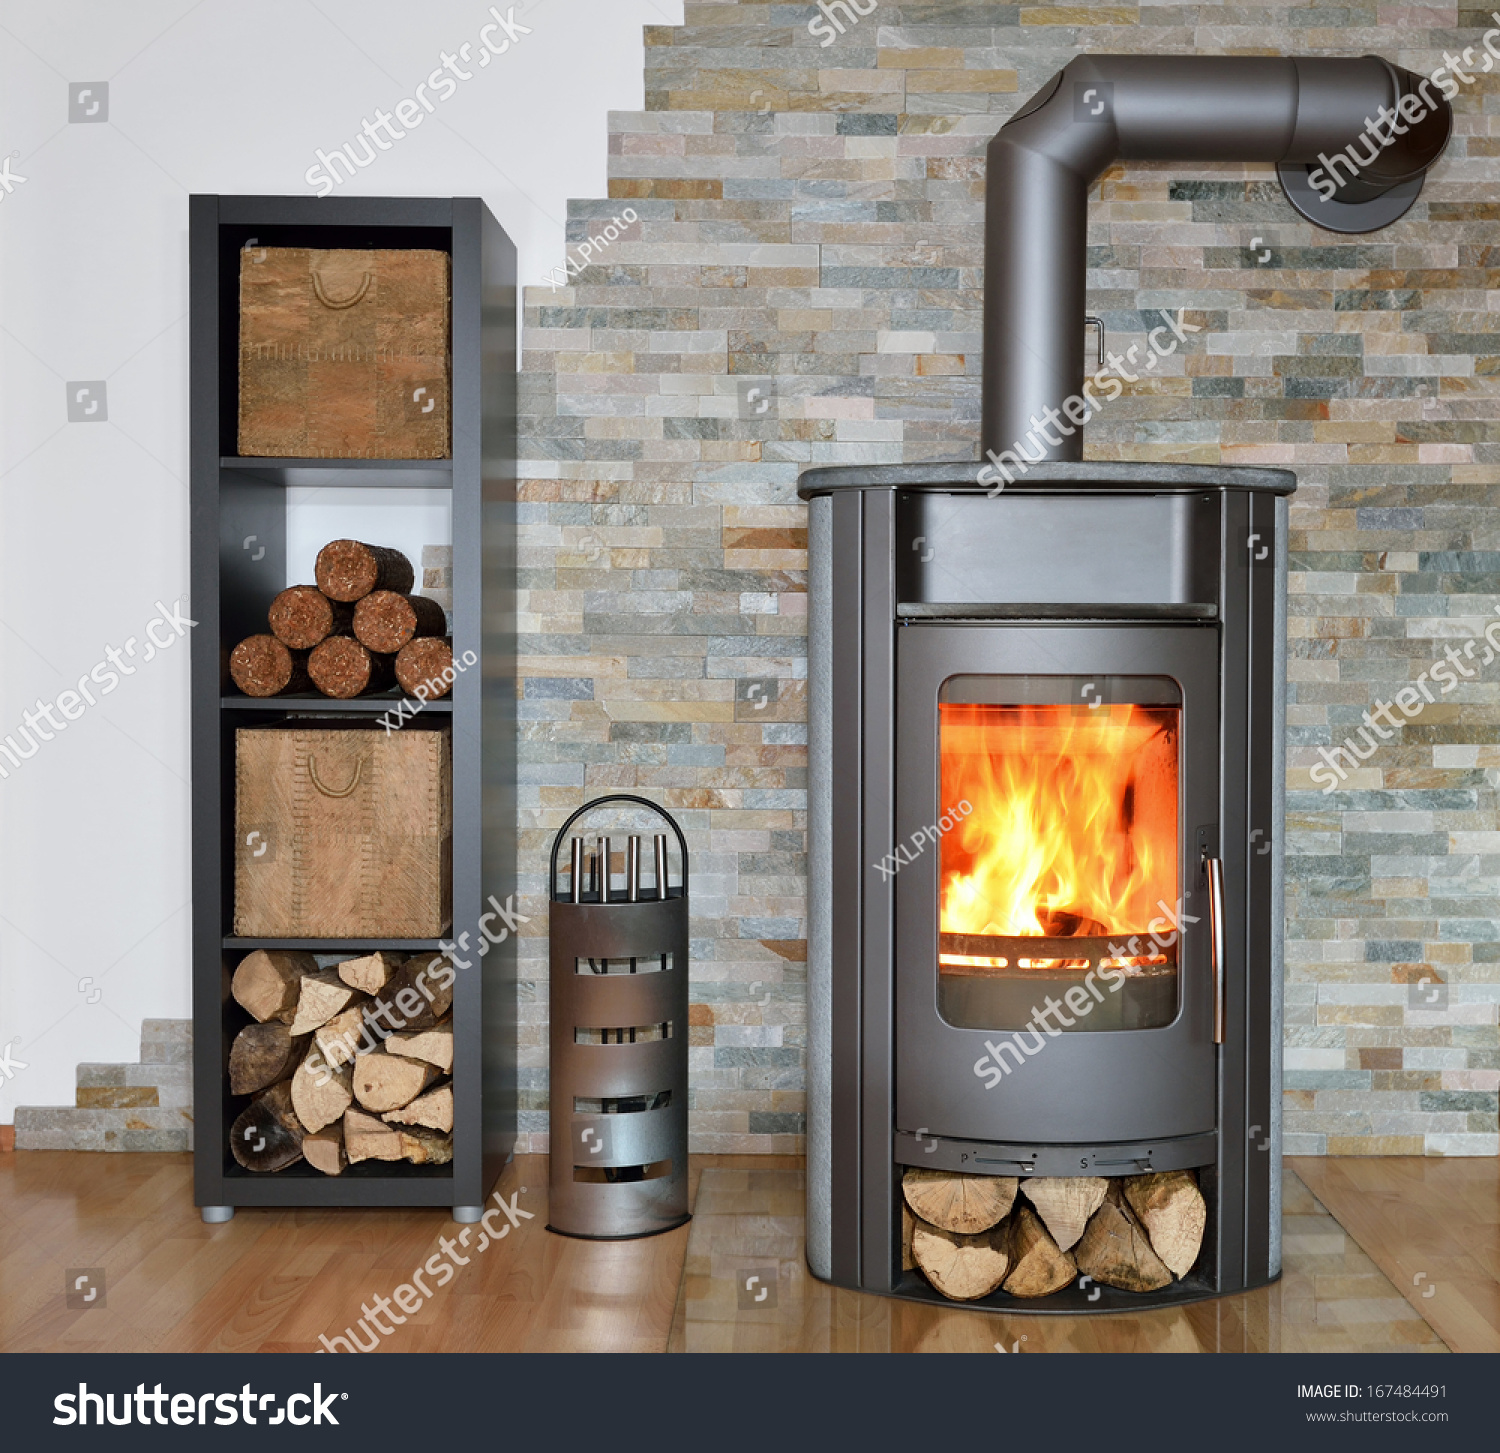 Wood fired stove with fire irons and